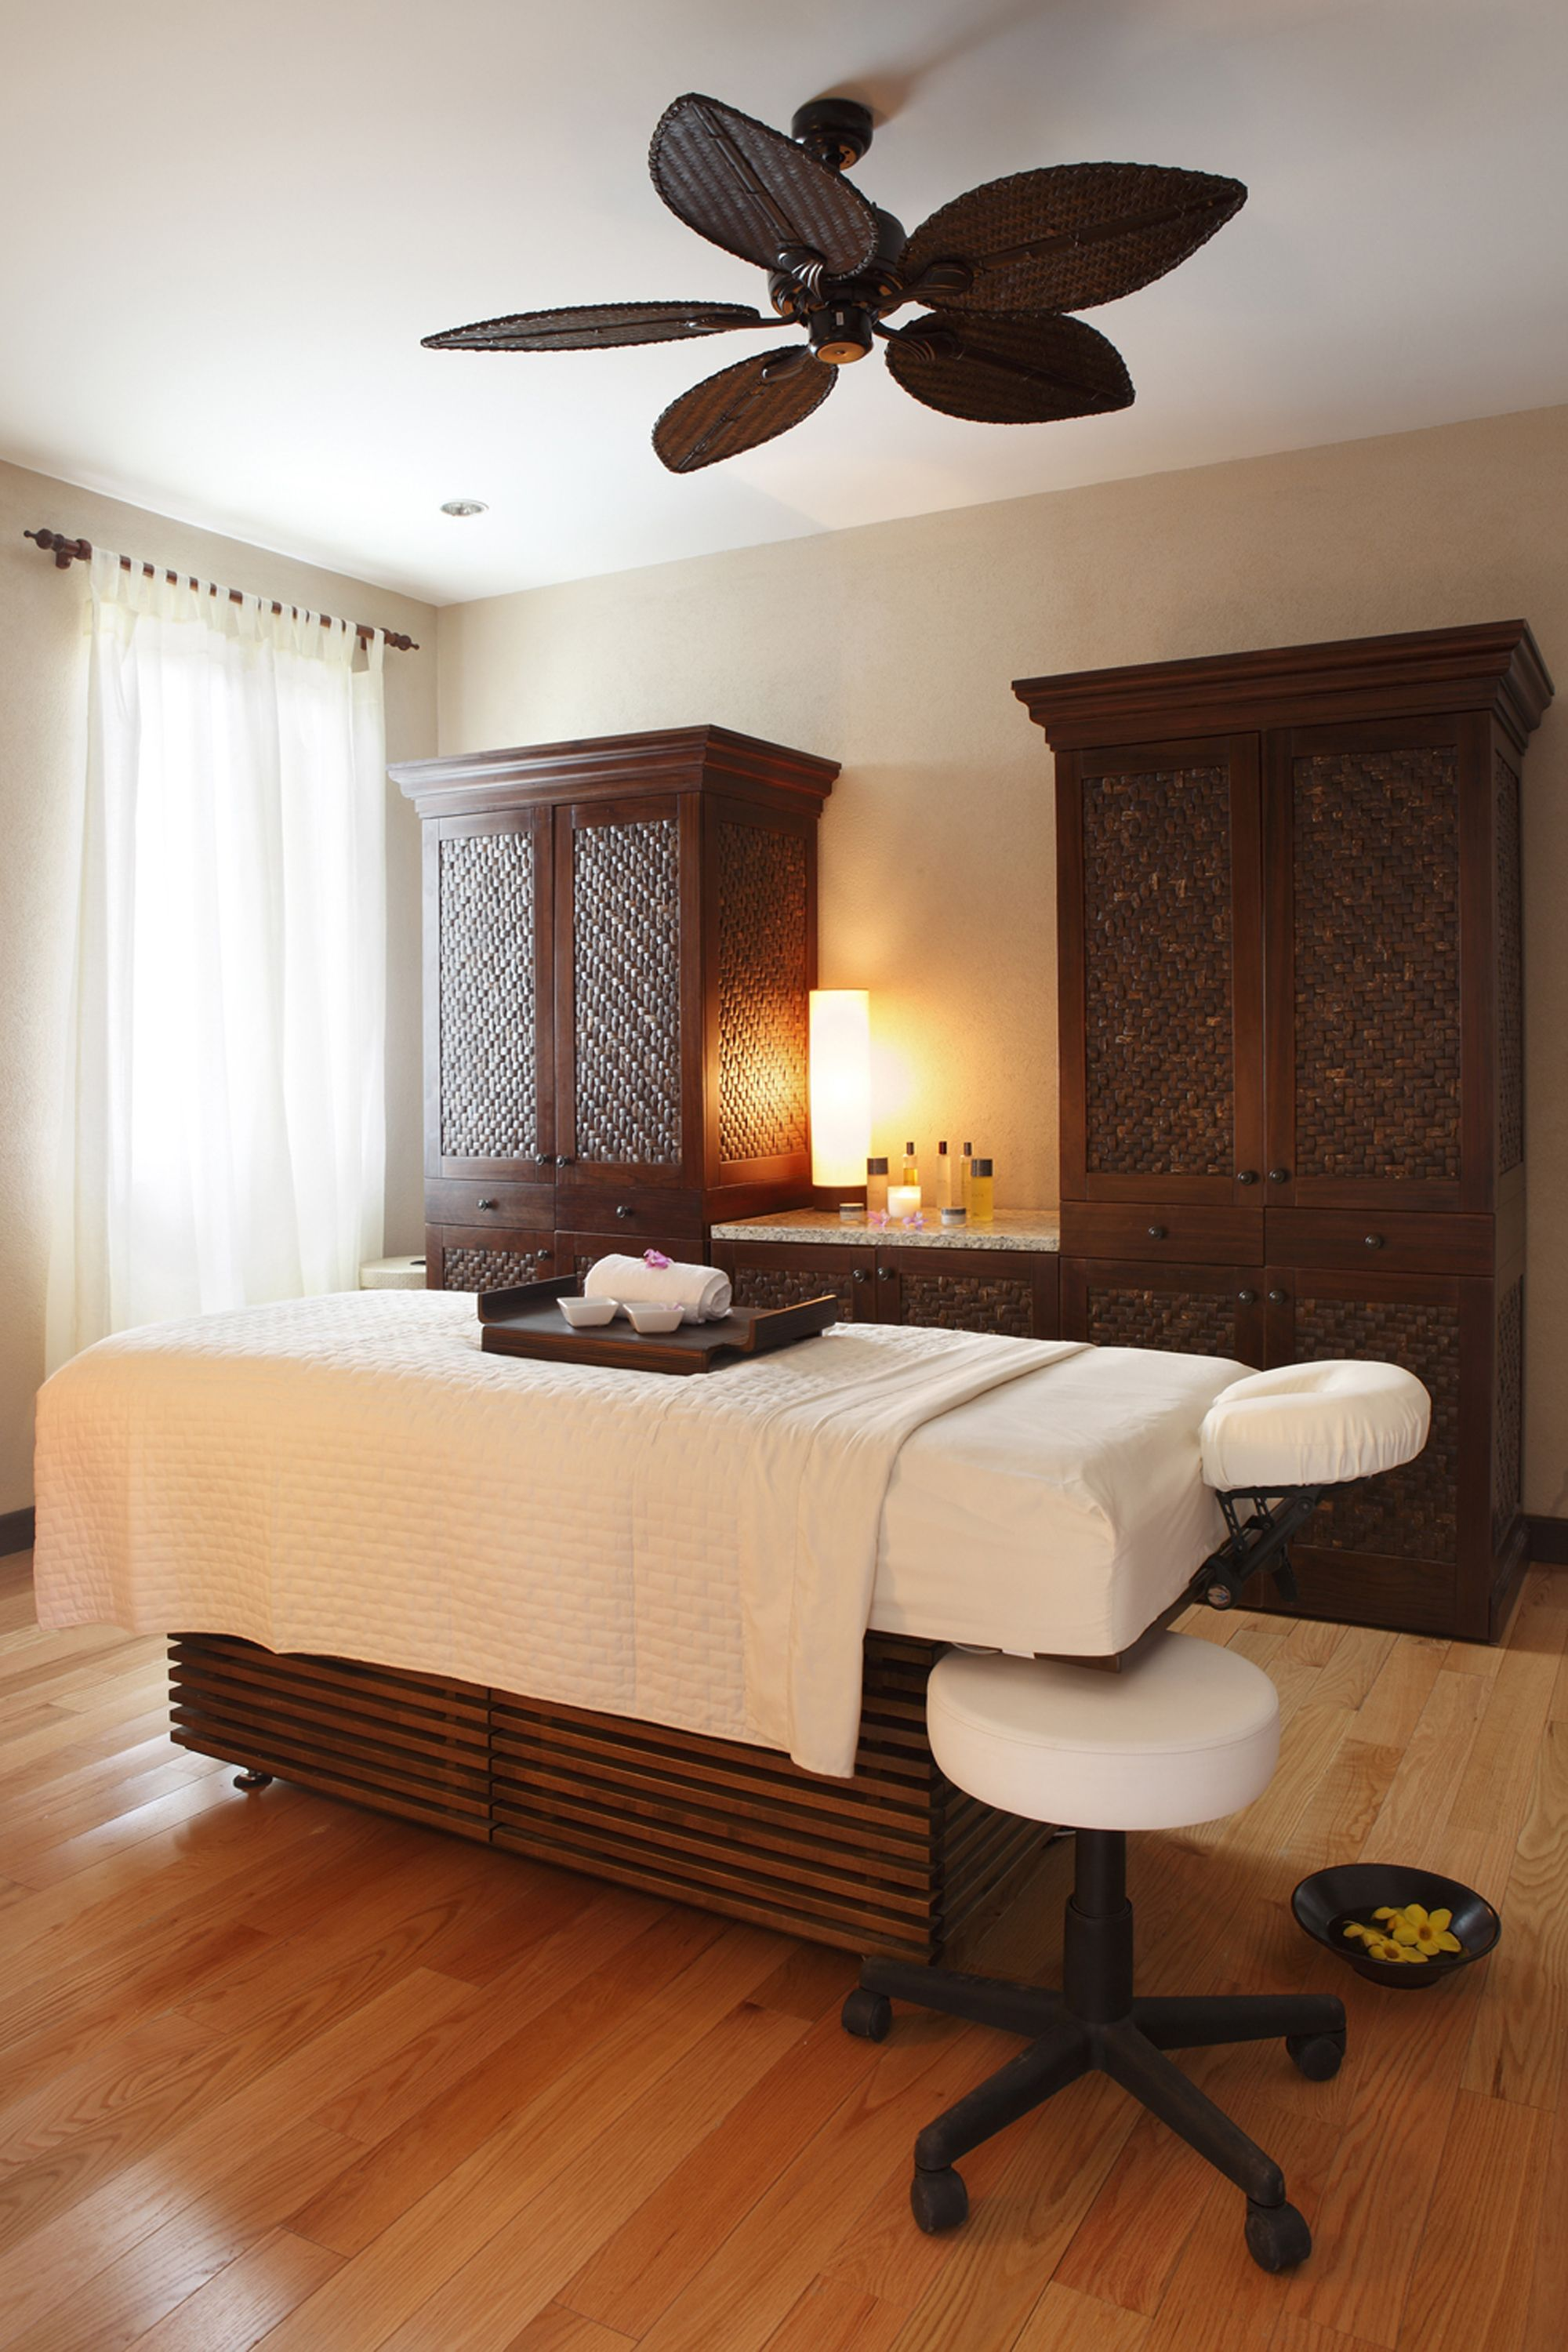 Come and relax at the Alaia Spa with products and treatments by ESPA